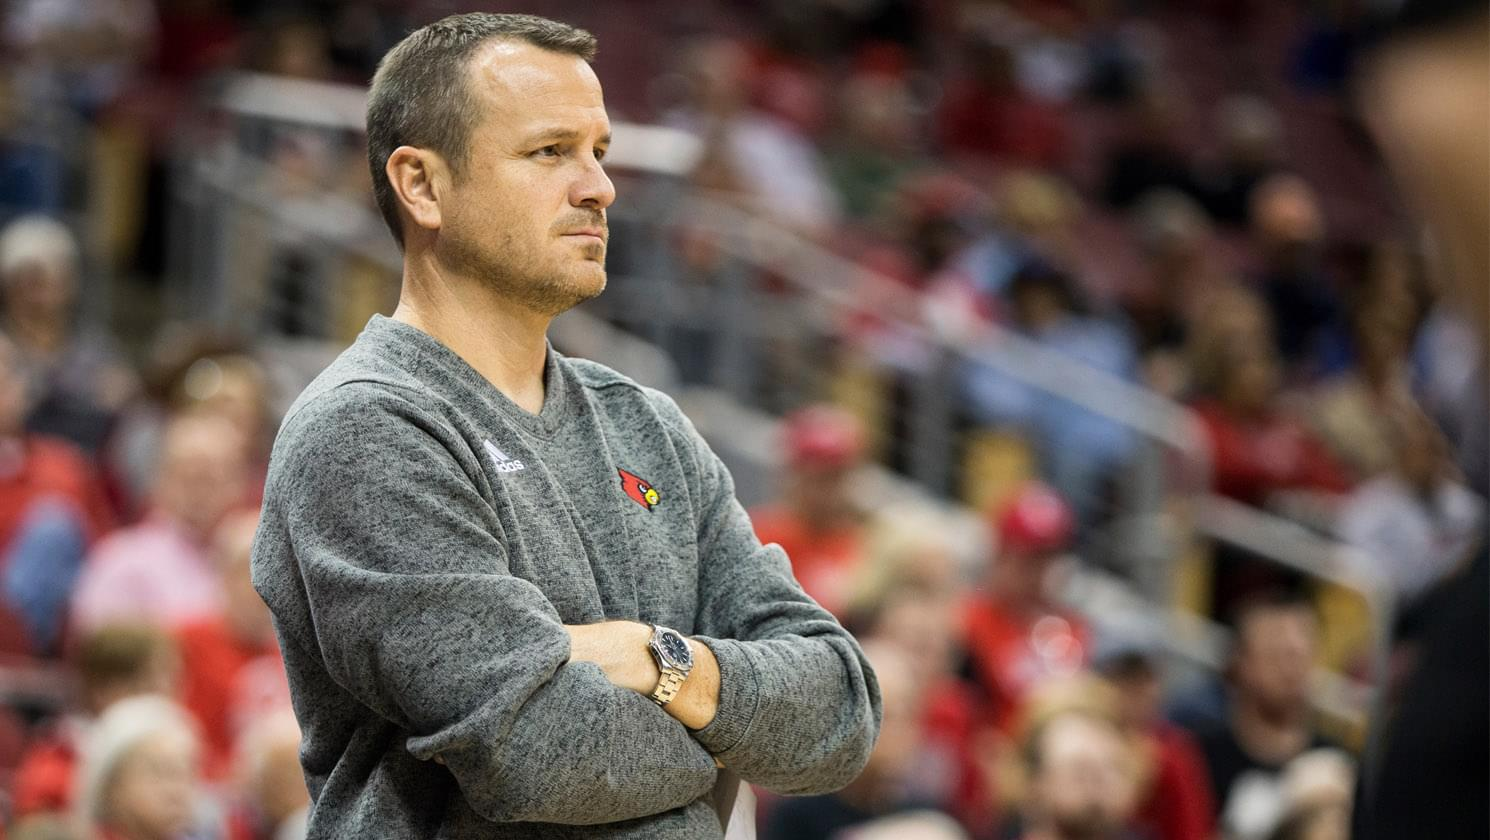 Jeff Walz on ESPN Louisville